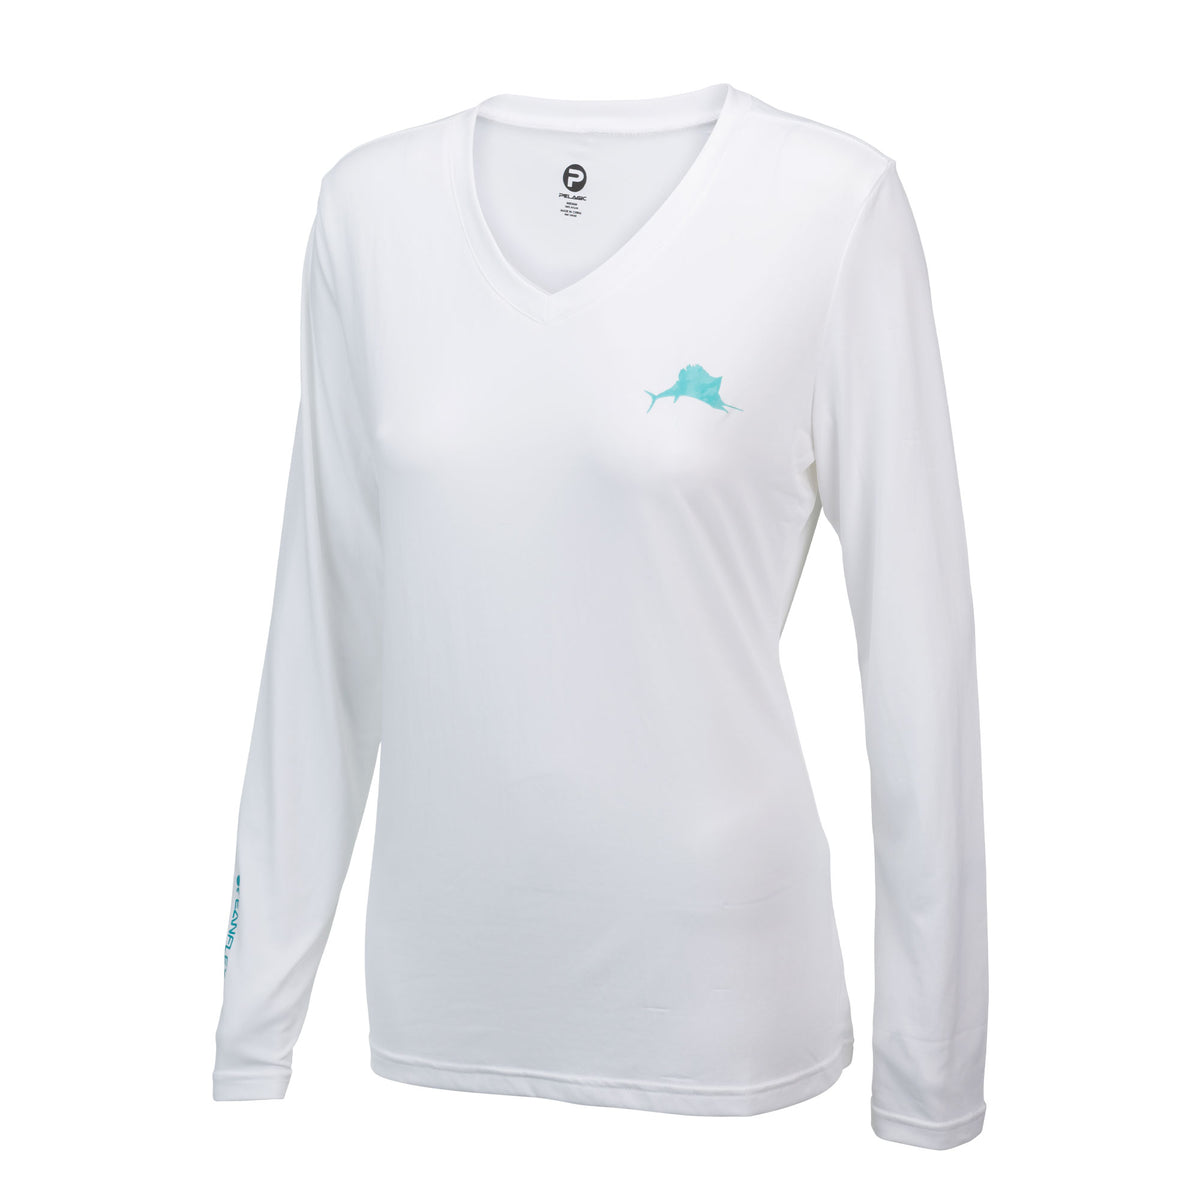 Solar Performance Long Sleeve UPF Shirt Big Image - 1